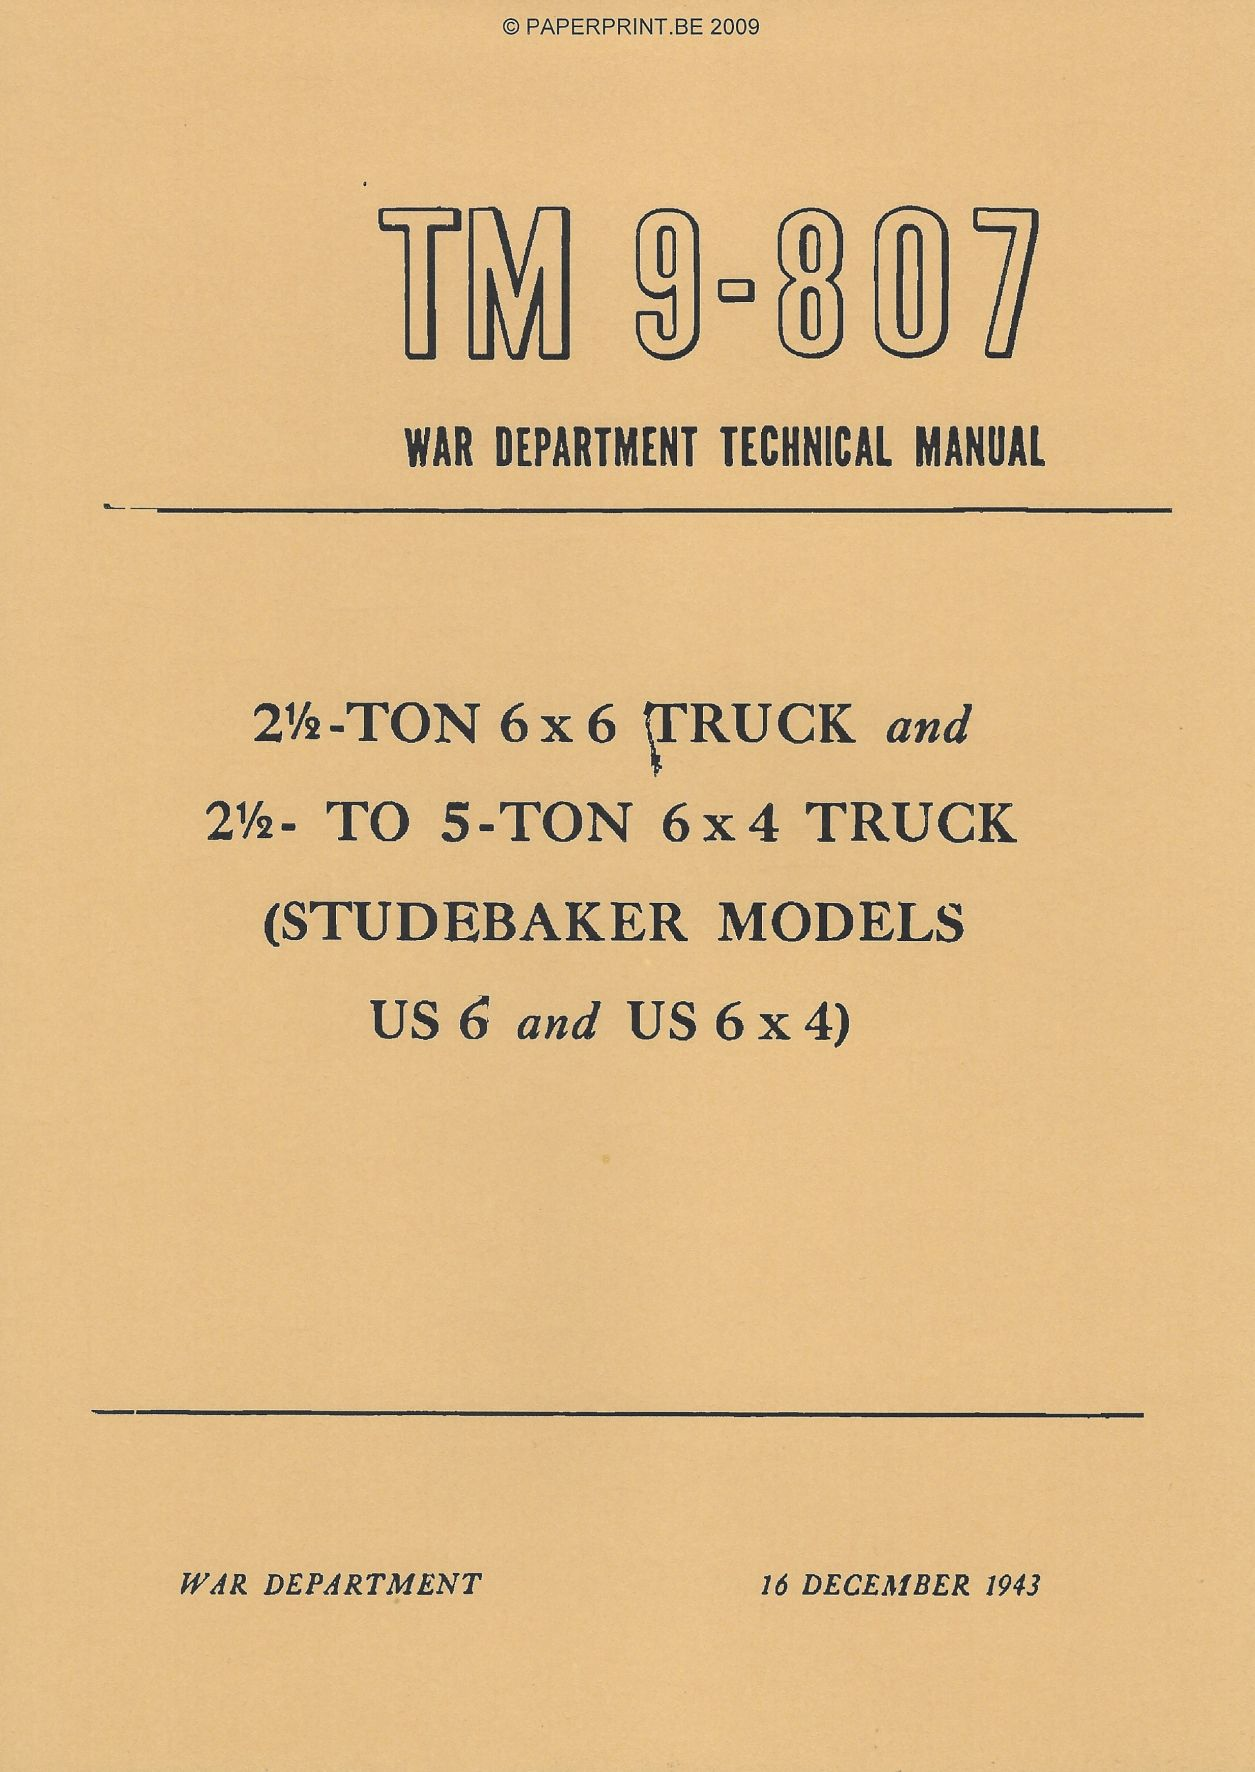 TM 9-807 US 2 ½ - TON 6x6 TRUCK AND 2 ½ TO 5 - TON 6x4 TRUCK (STUDEBAKER MODELS US6 AND US6x4)